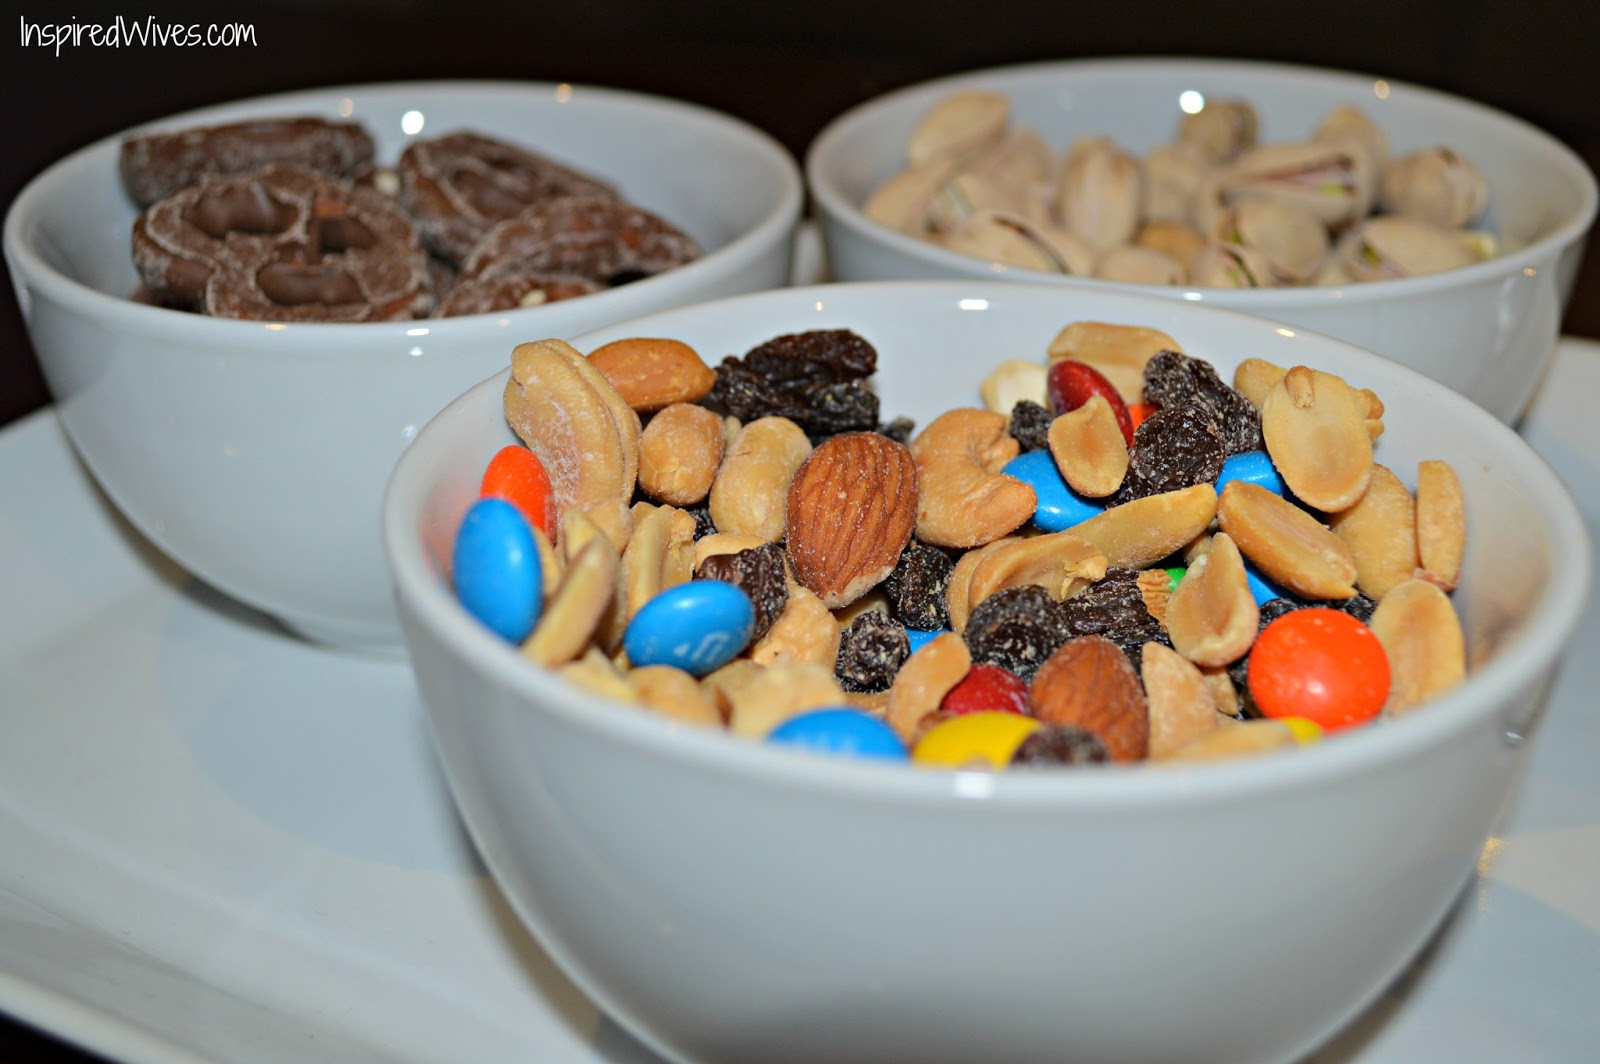 Healthy Cheap Snacks  Inspired I Dos Game Night Pajama Party